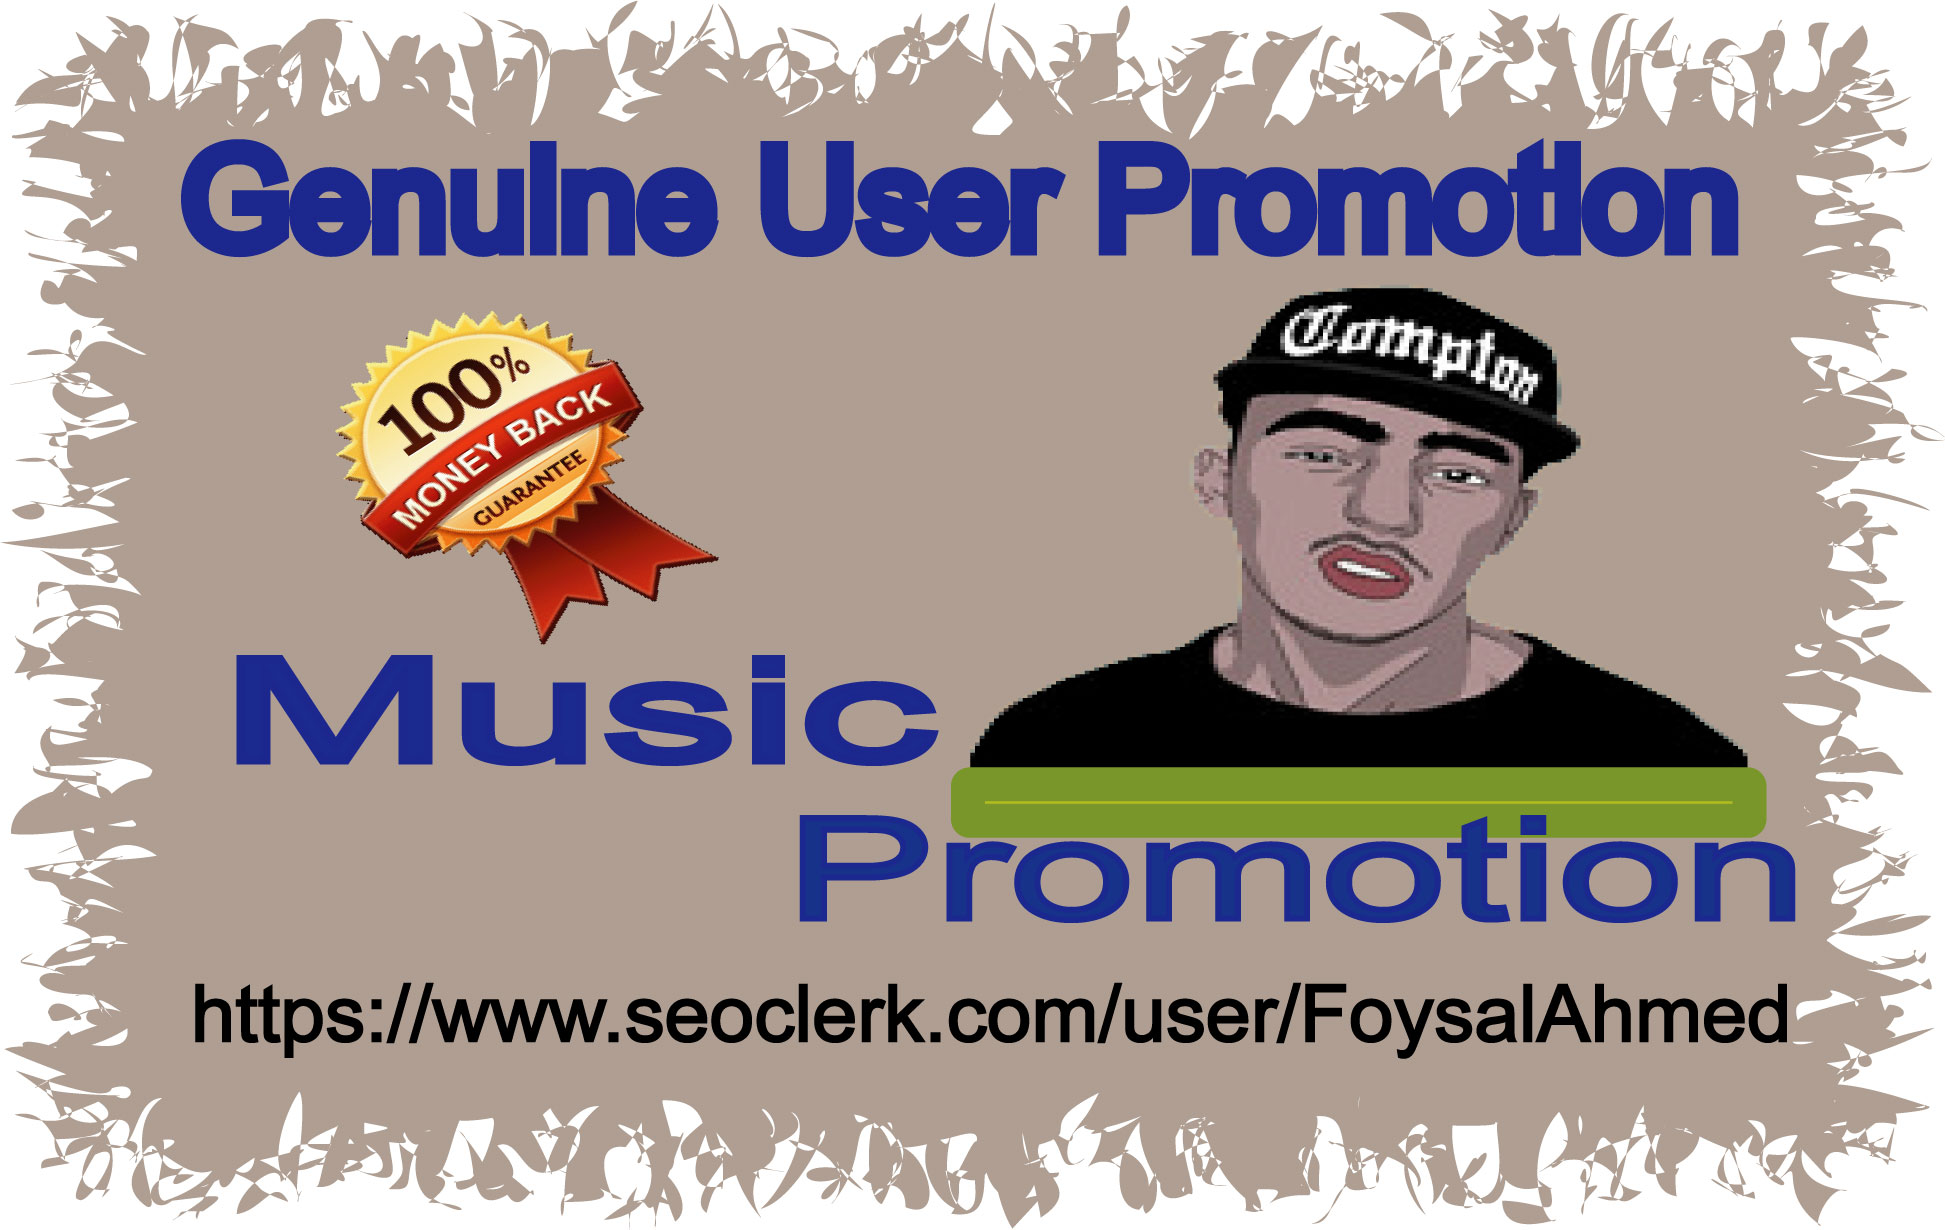 Music-Promotion-25K-Music-Listening-amp-Other-Promotion-For-Your-Track